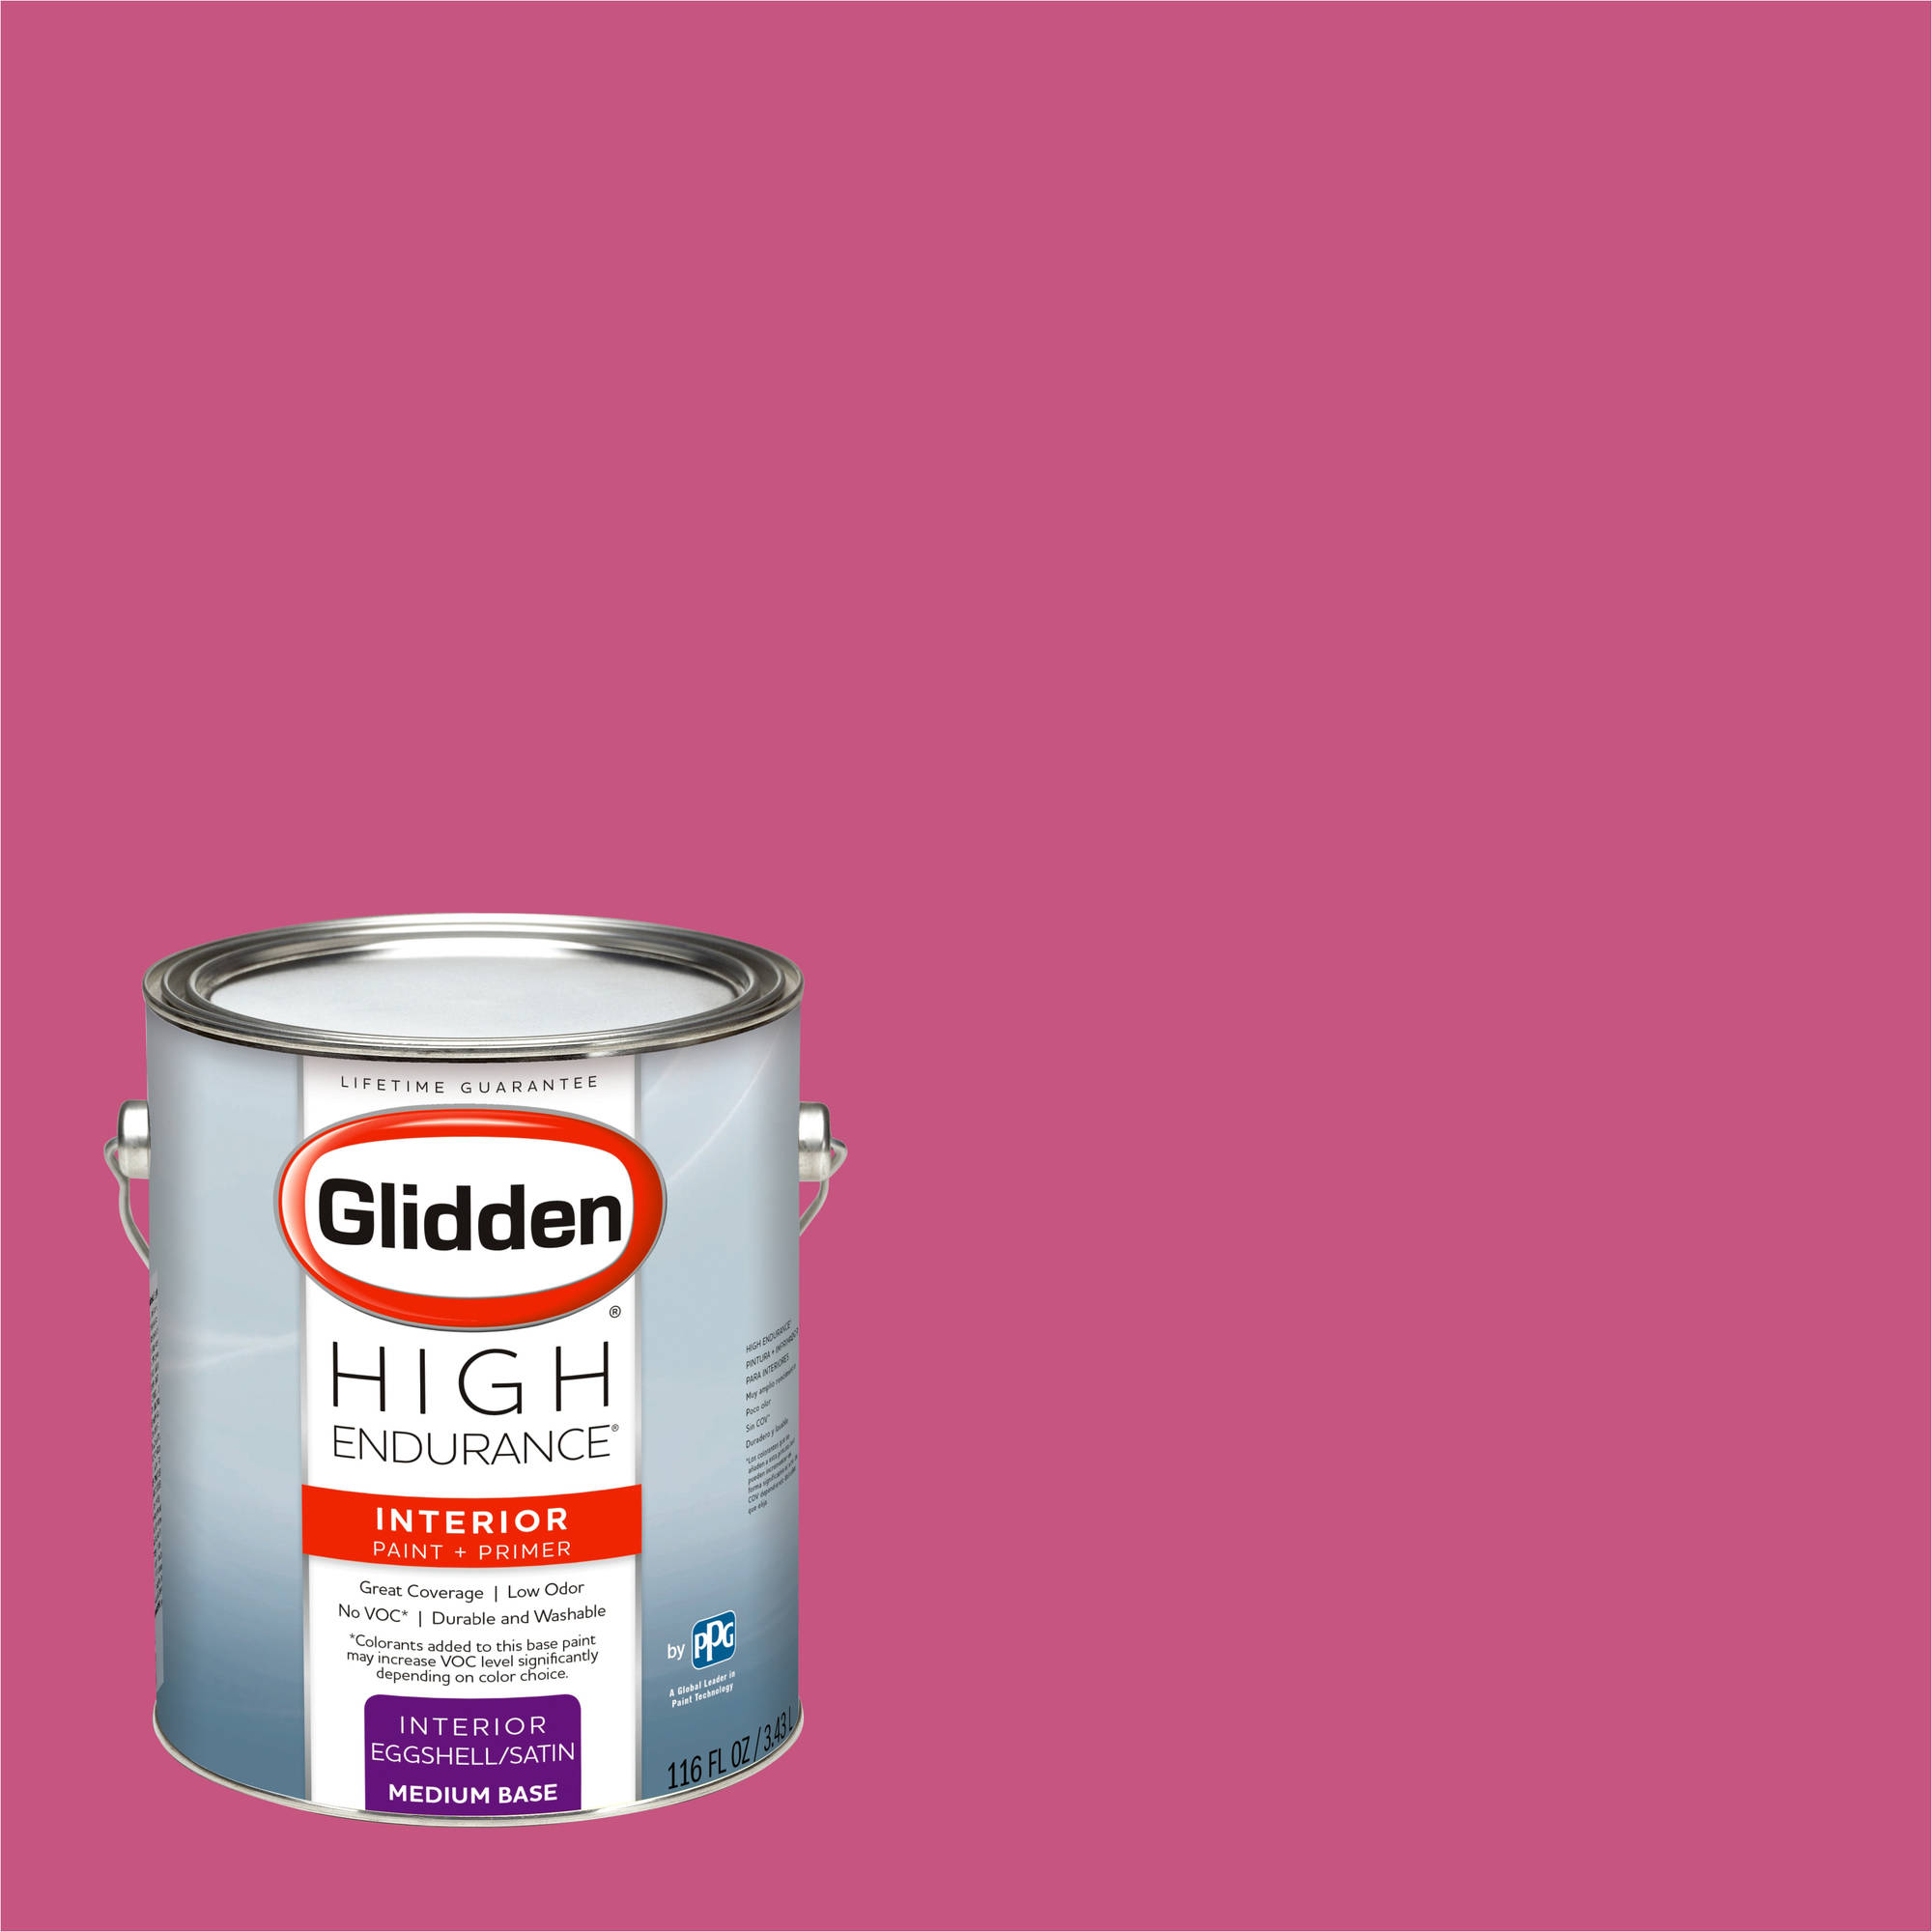 Glidden High Endurance, Interior Paint and Primer, Azalea Pink, # 43RR 19/444